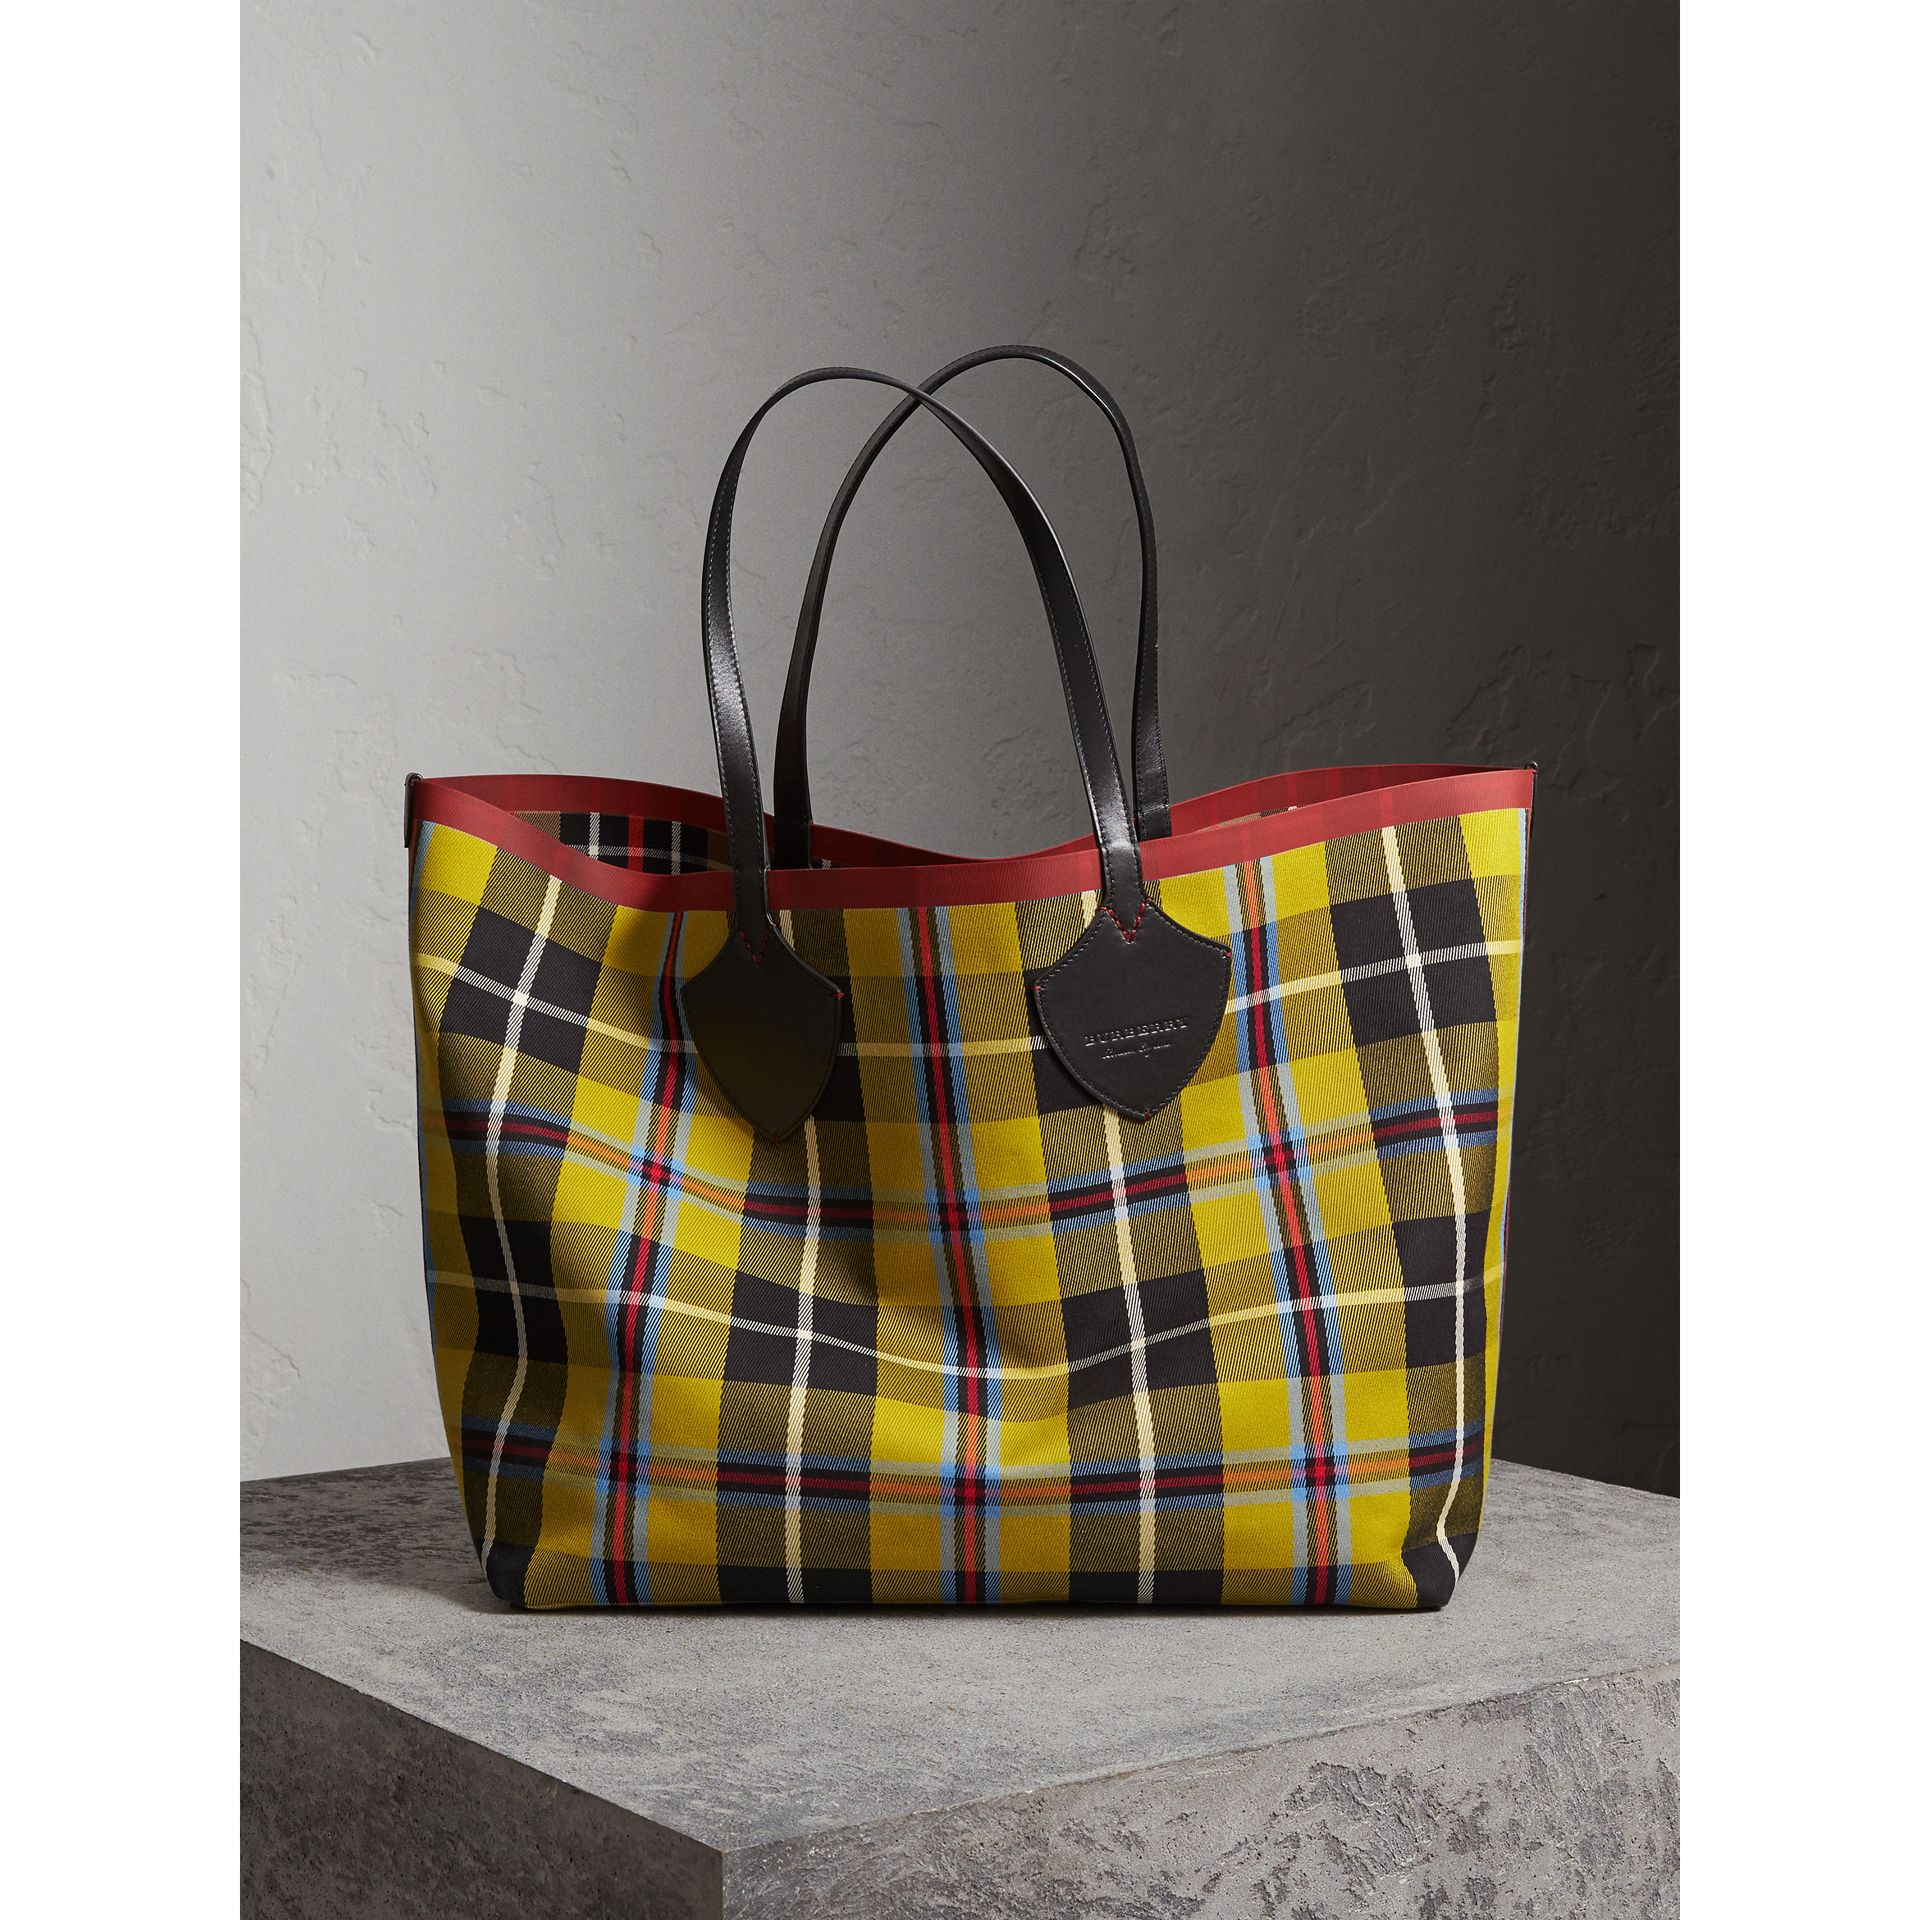 Sac tote The Giant réversible en coton tartan (Caramel/jaune Lin) | Burberry Canada - photo de la galerie 4